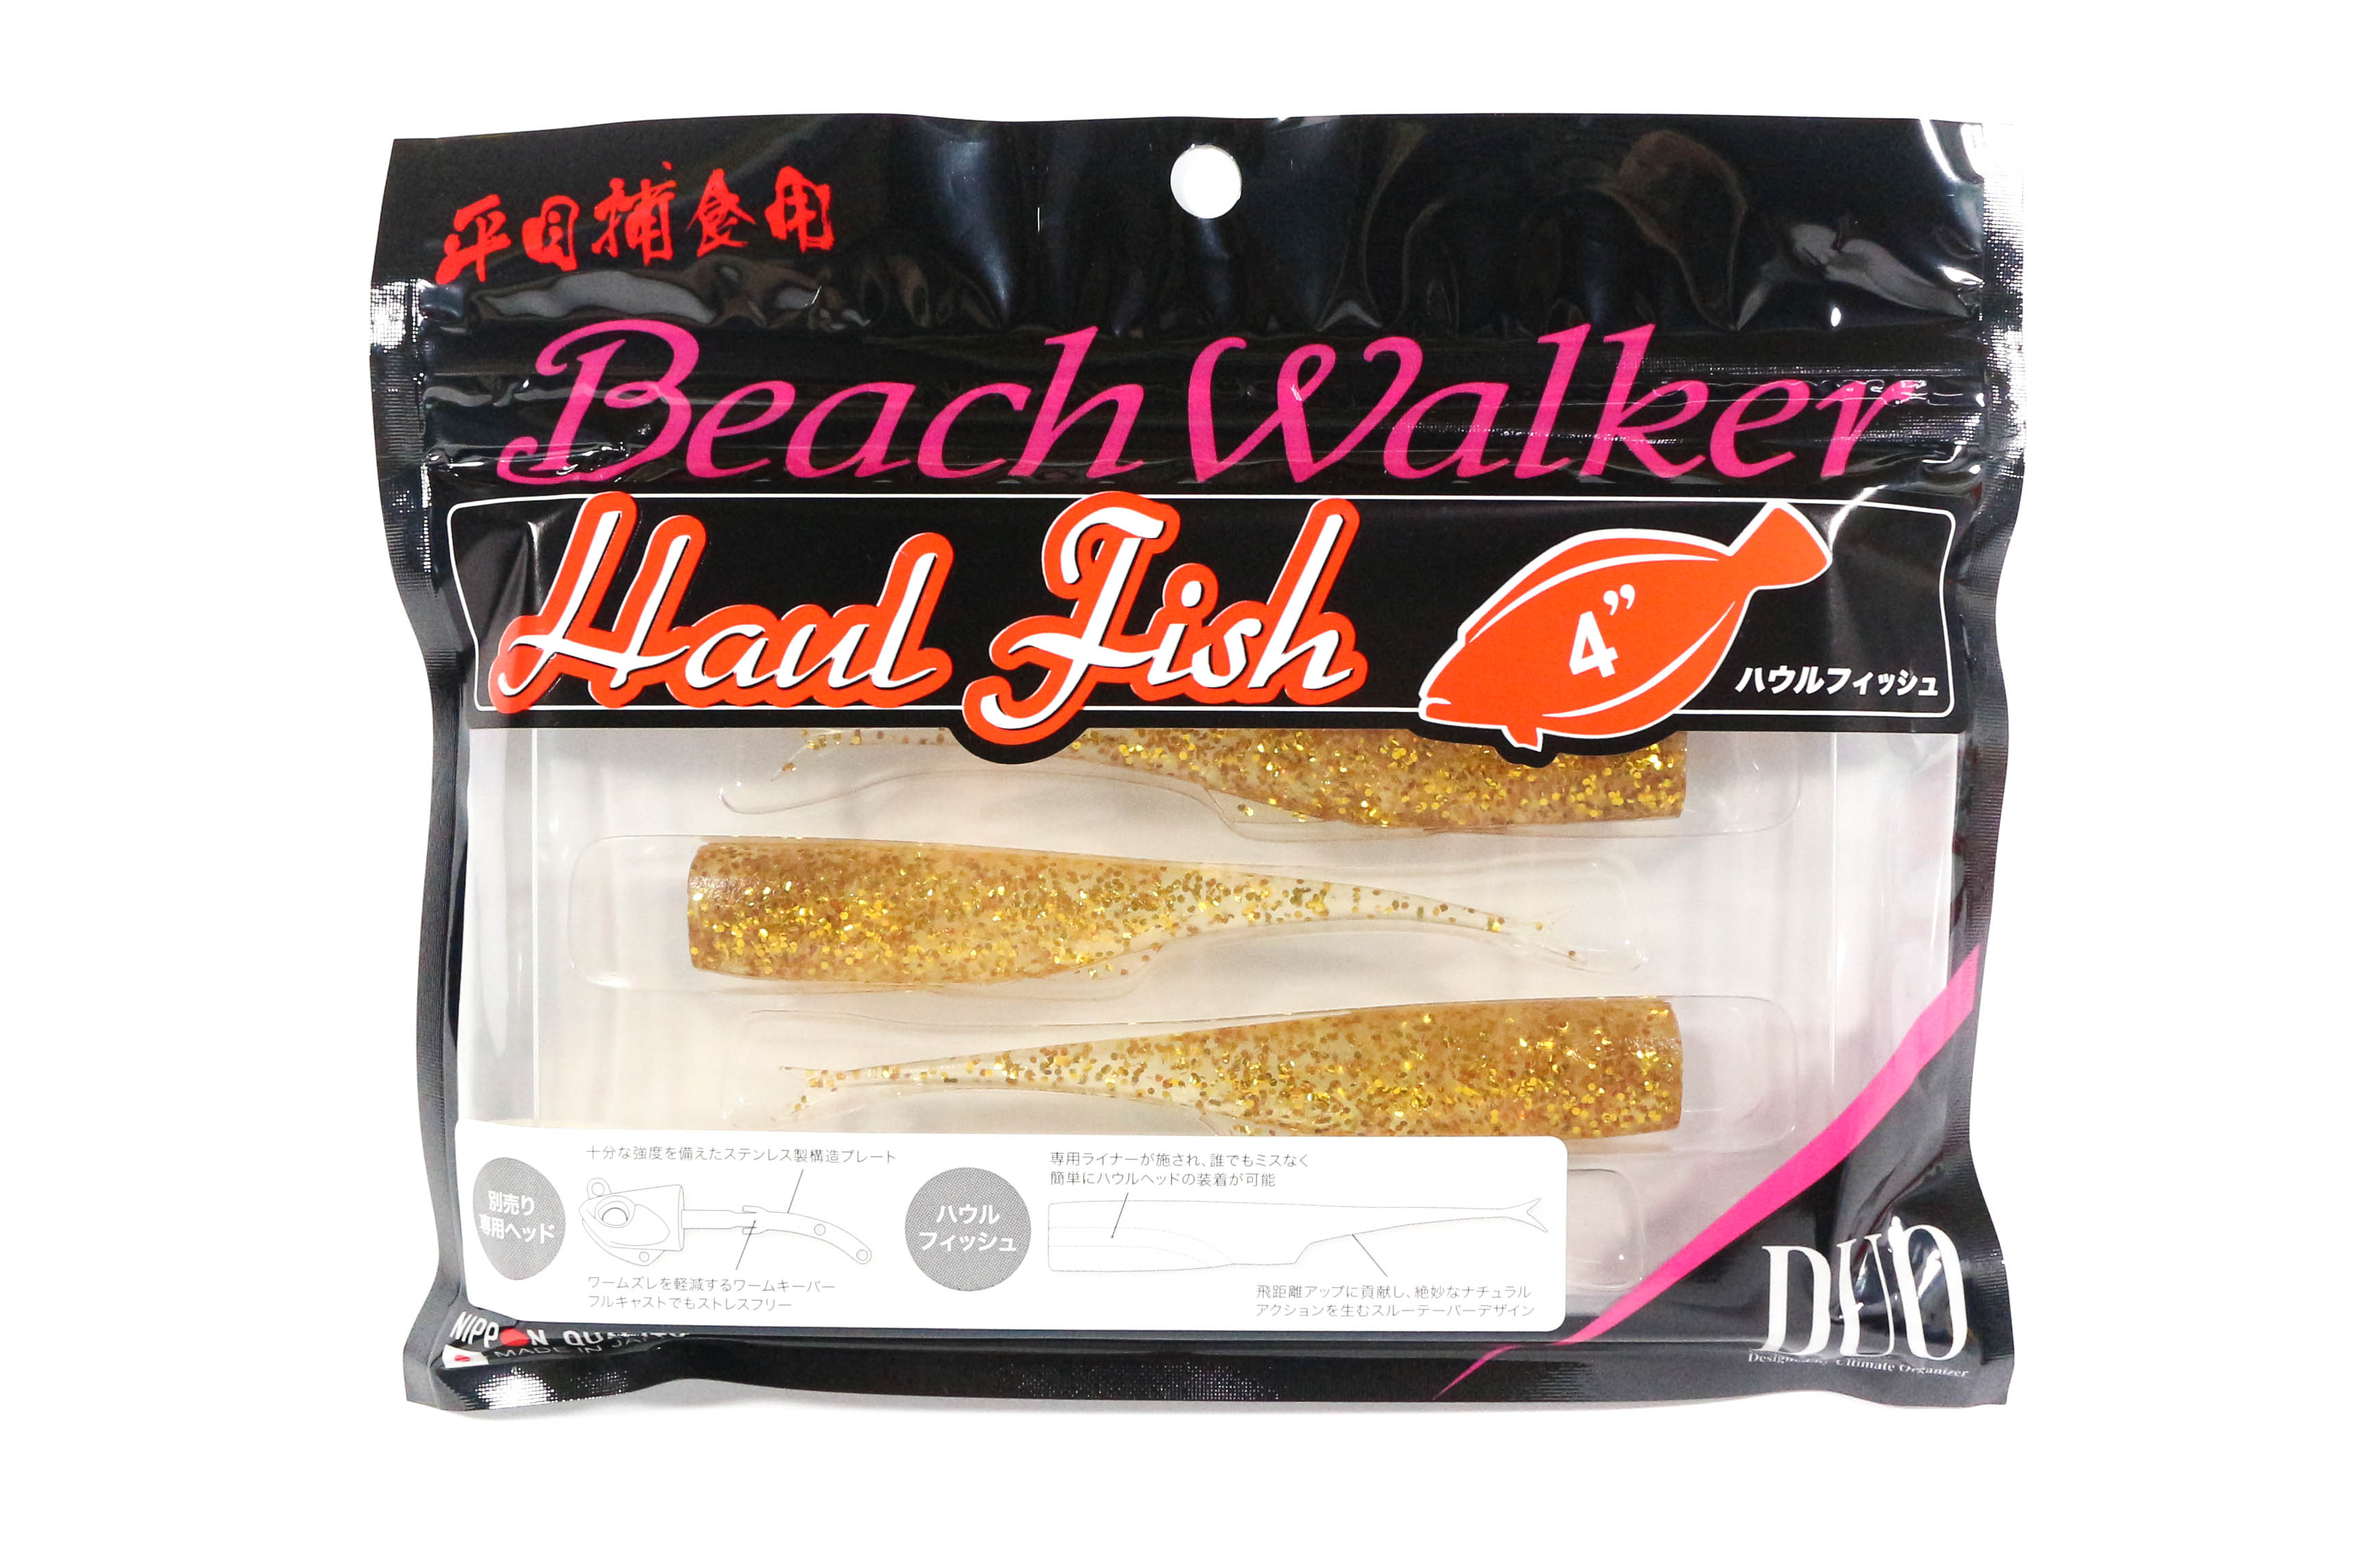 Duo Beach Walker Soft Plastic Haul Fish 4 Inches S010 (9758)